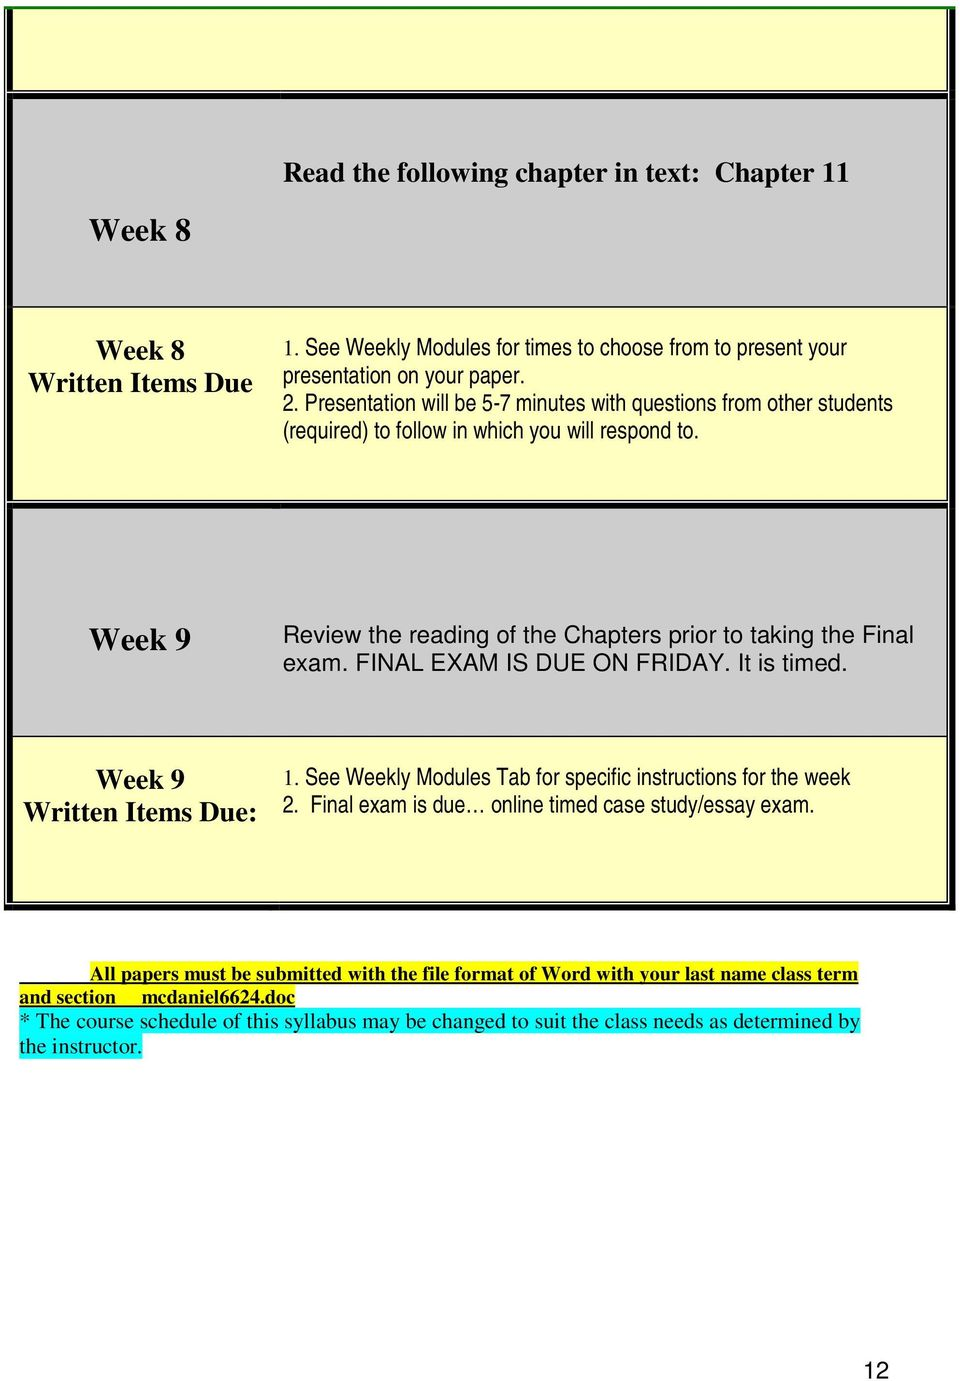 FINAL EXAM IS DUE ON FRIDAY. It is timed. Week 9 Written Items Due: 1. See Weekly Modules Tab for specific instructions for the week 2. Final exam is due online timed case study/essay exam.